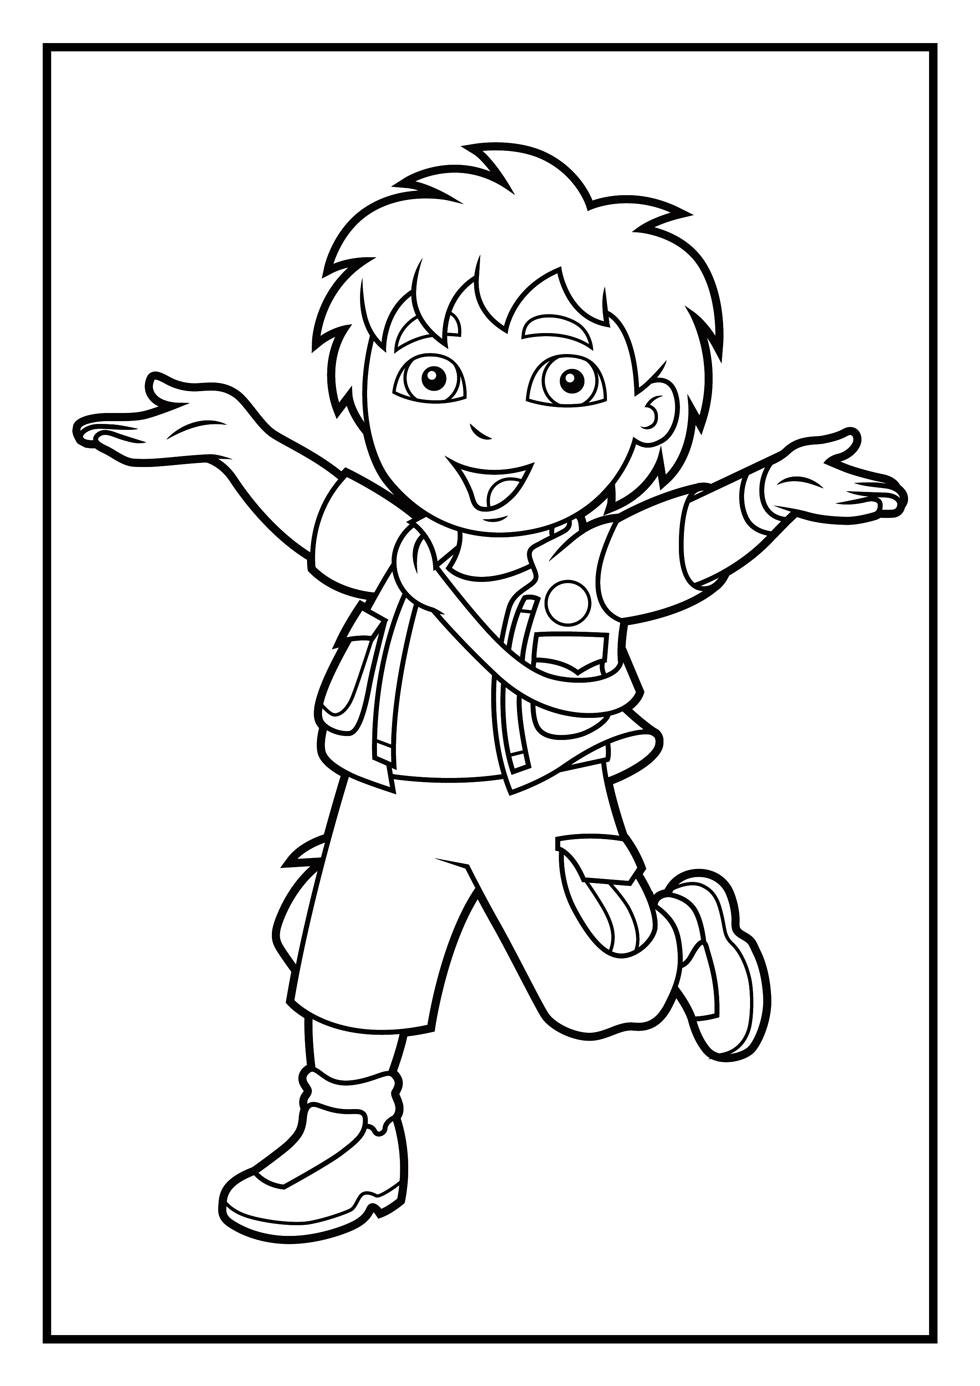 coloring pages diego coloring pages